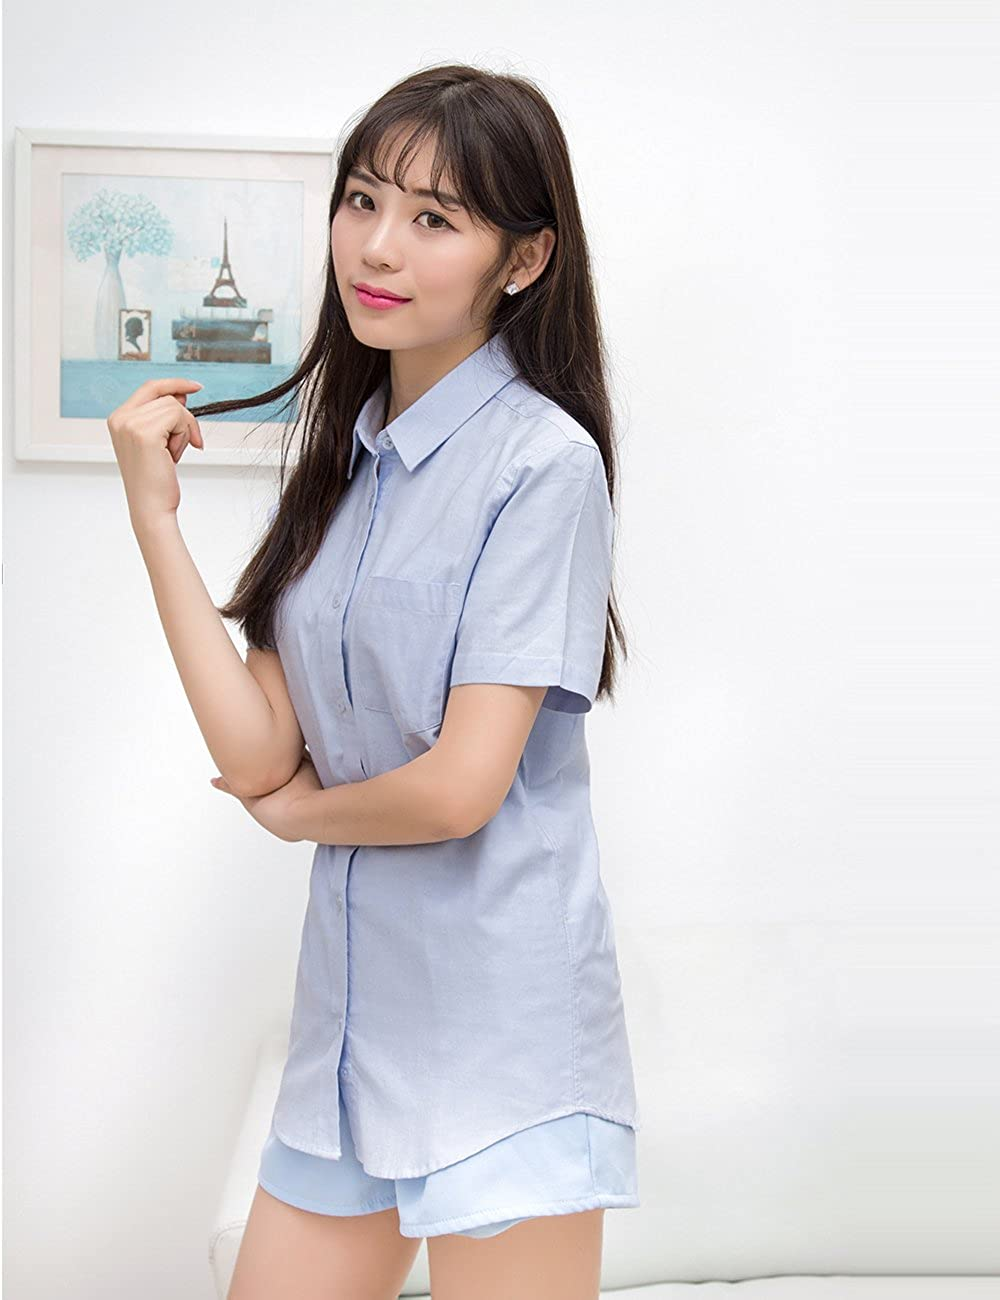 e5628c4508ae XI PENG Women's Chemise Tops Button Down Short Sleeve Work Dress Shirts  Blouses at Amazon Women's Clothing store: